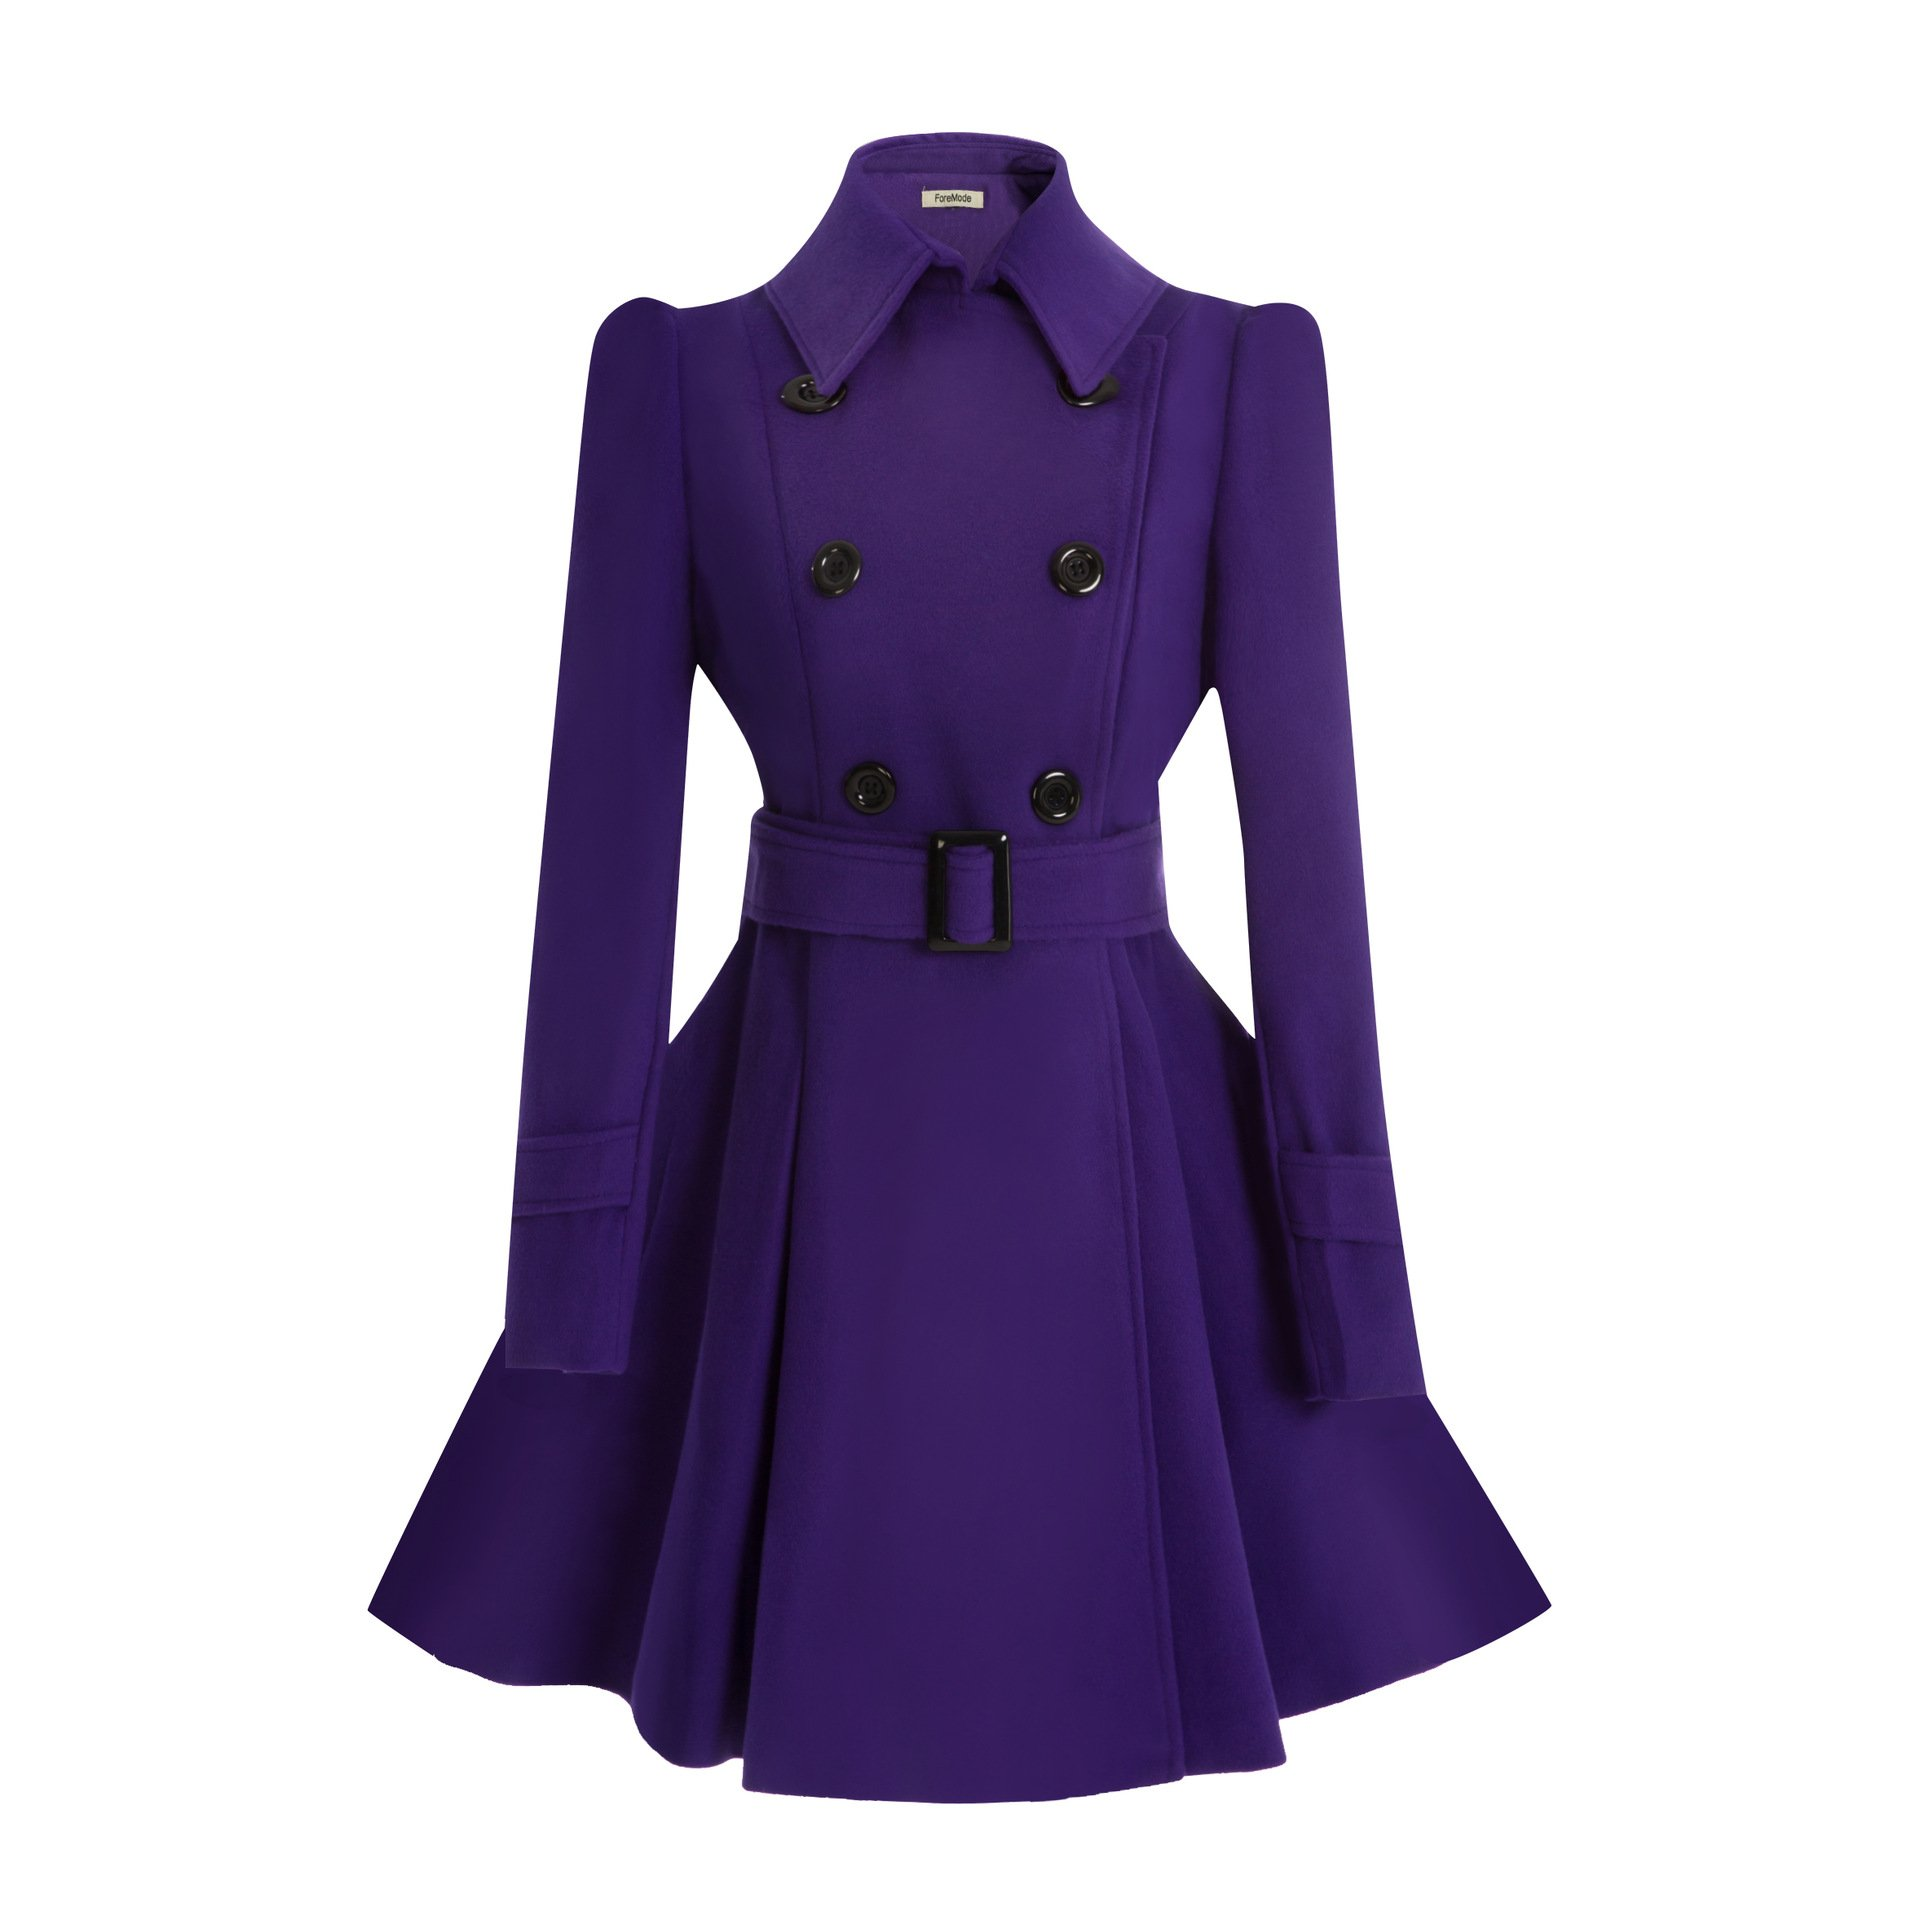 ForeMode Women Swing Double Breasted Wool Coat with Belt Buckle Spring Mid-Long Long Sleeve Lapel Dresses Outwear(Purple M)